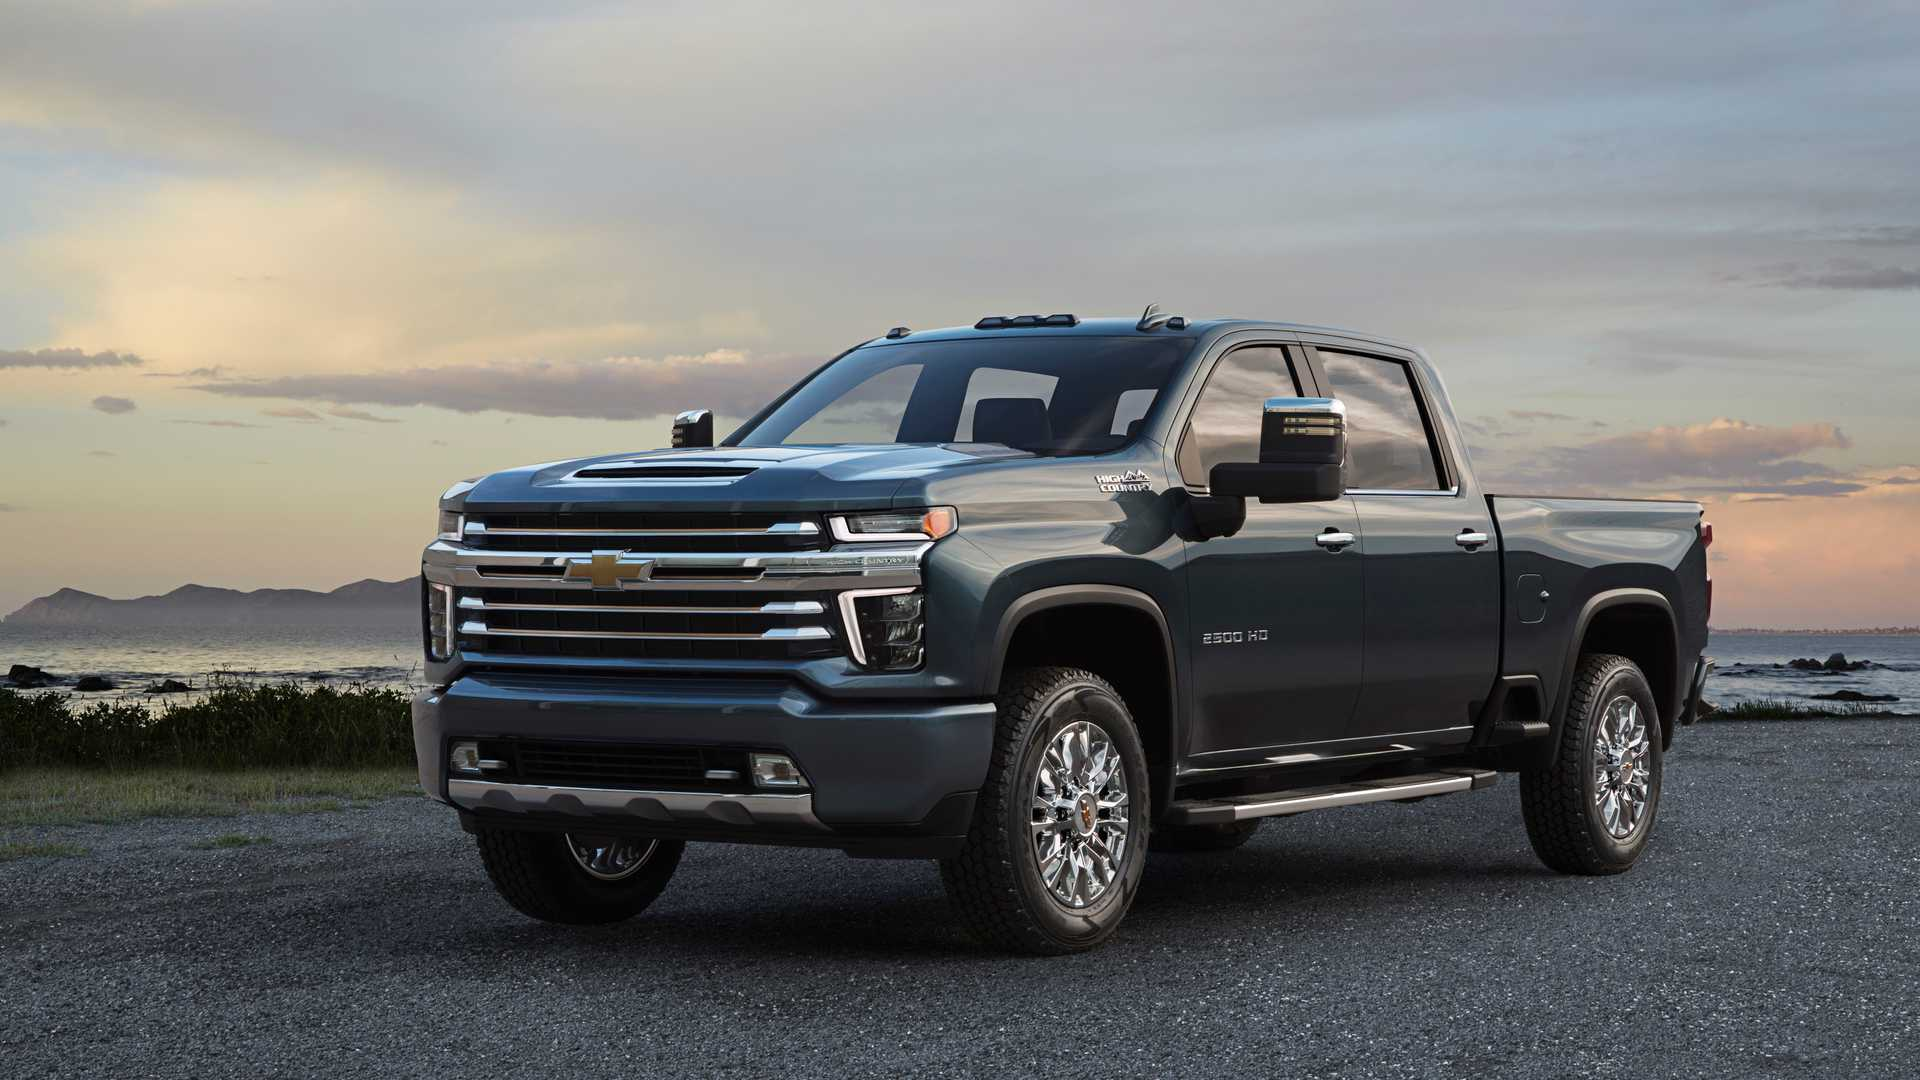 Chevrolet Silverado HD News and Reviews | Motor1.com